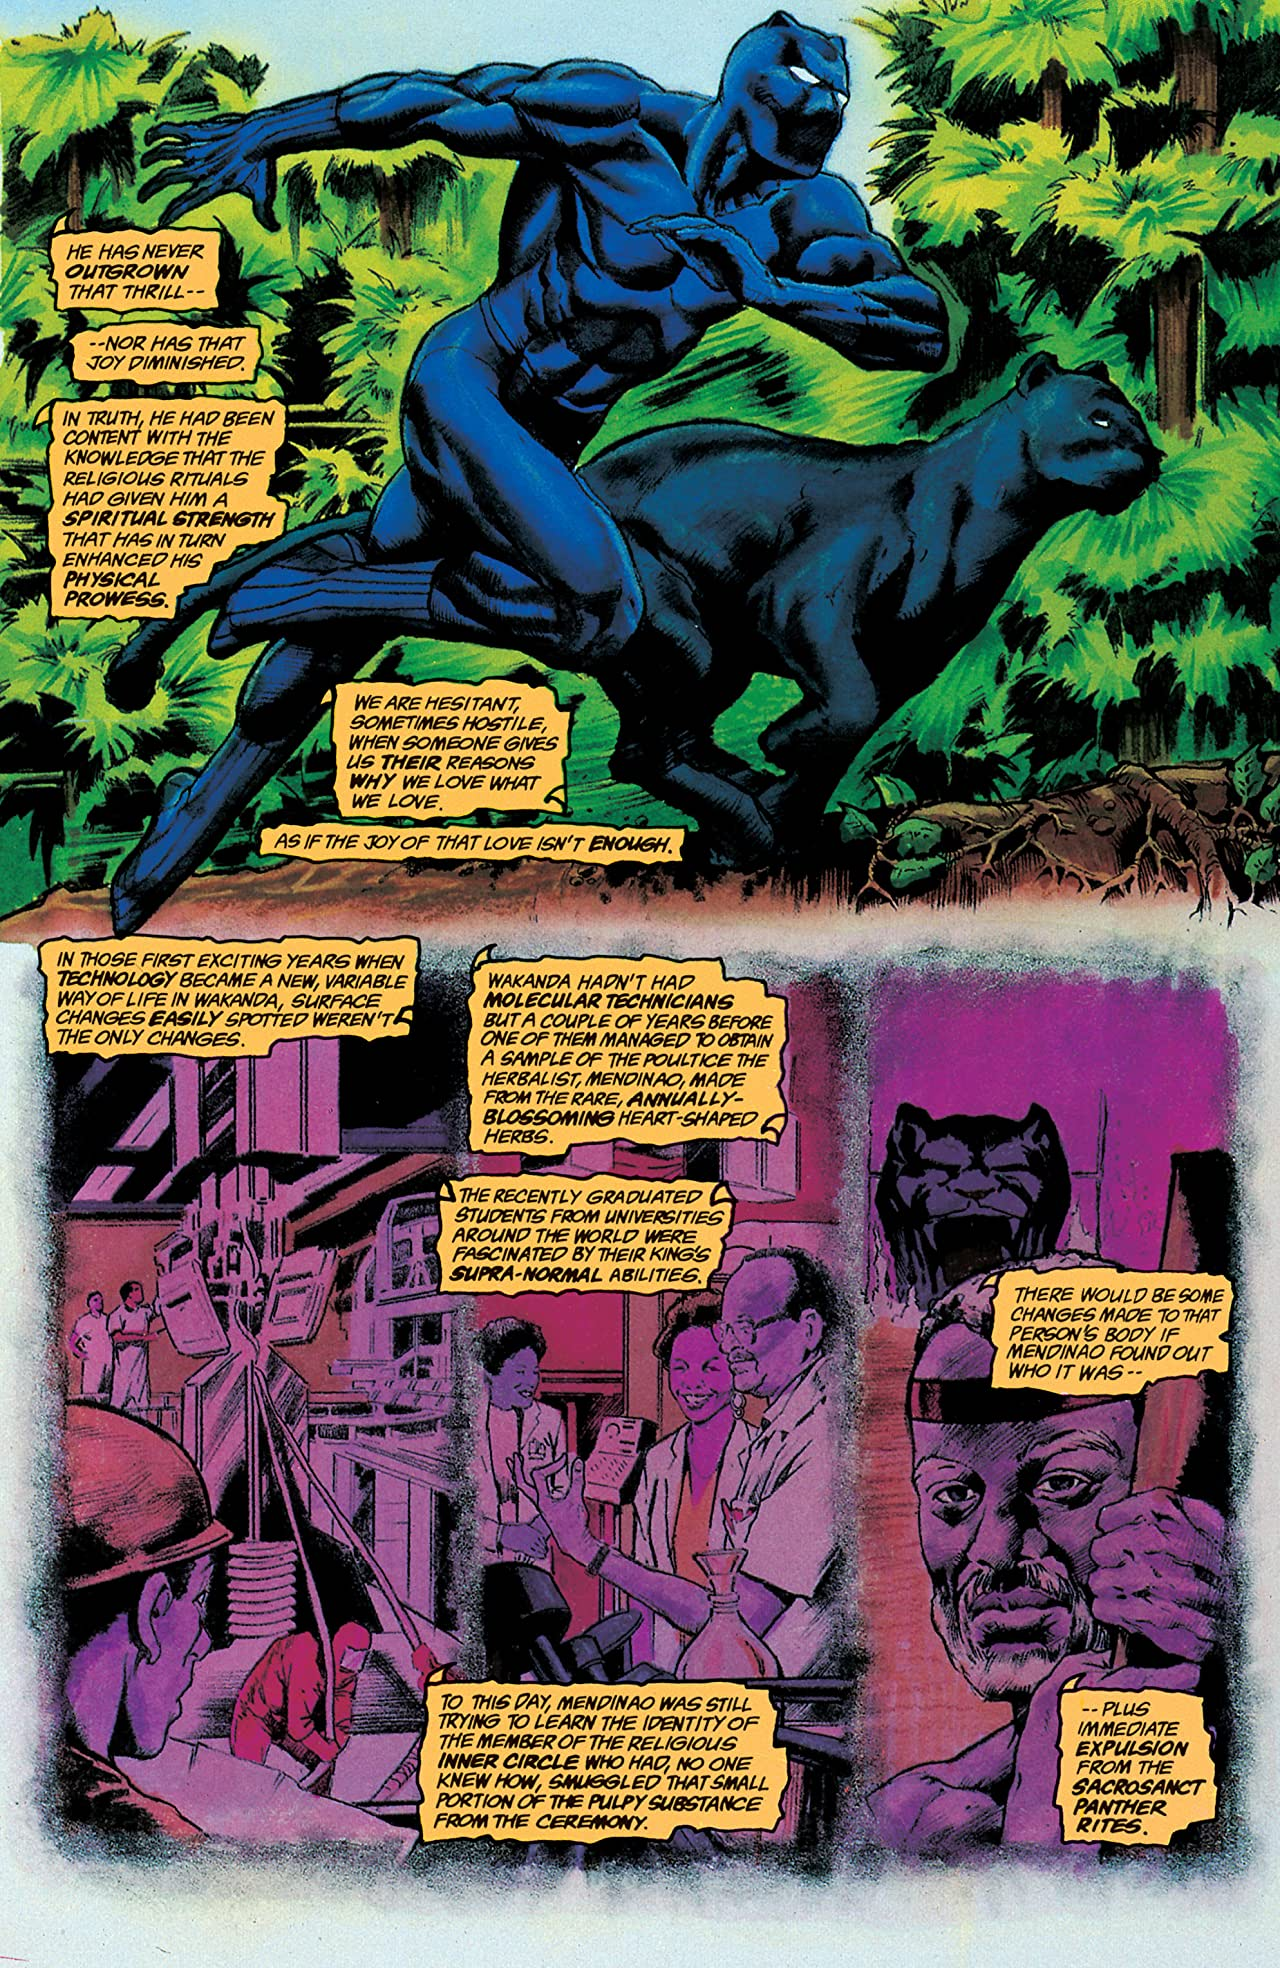 Black Panther: Panther's Prey (1991) #3 (of 4)